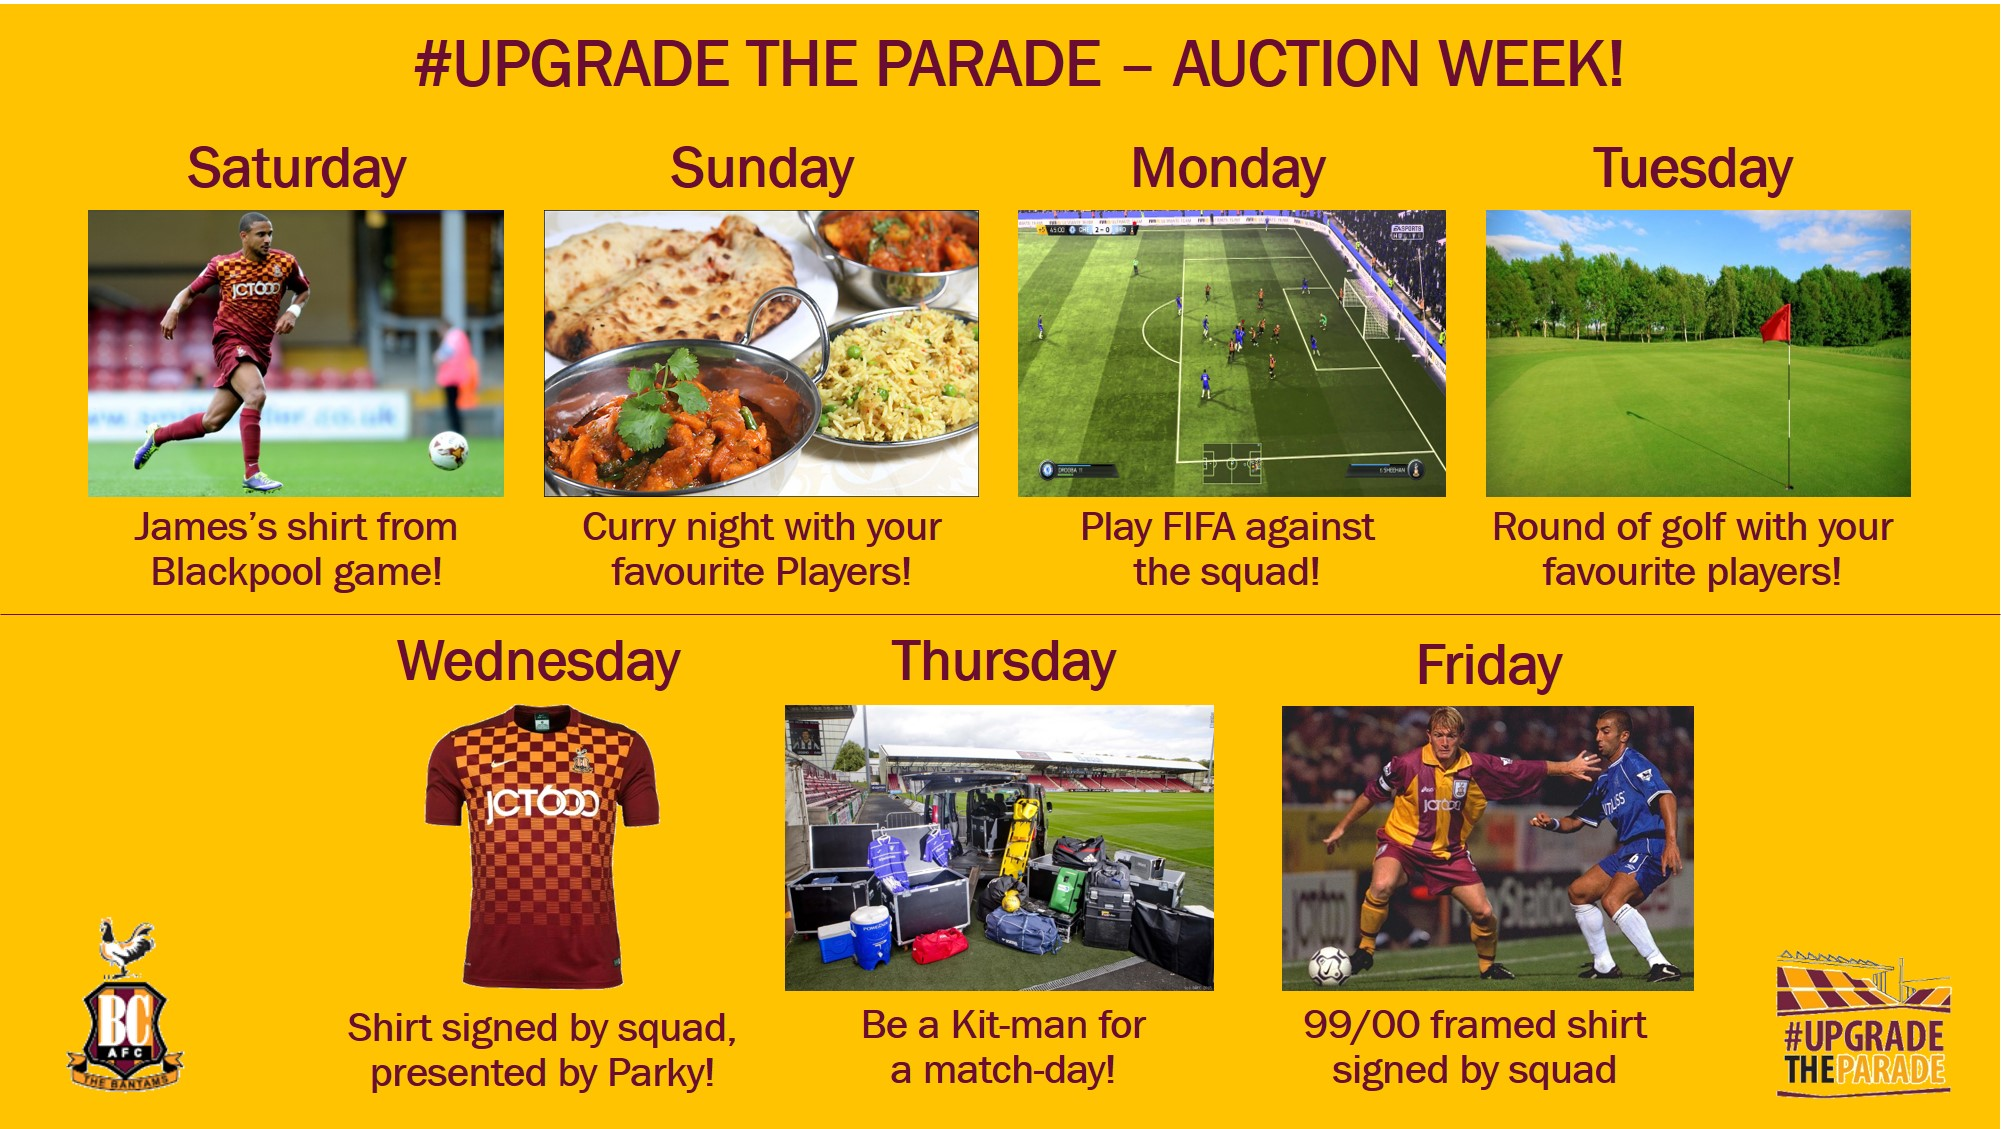 AUCTIONWEEKBCAFC.jpg